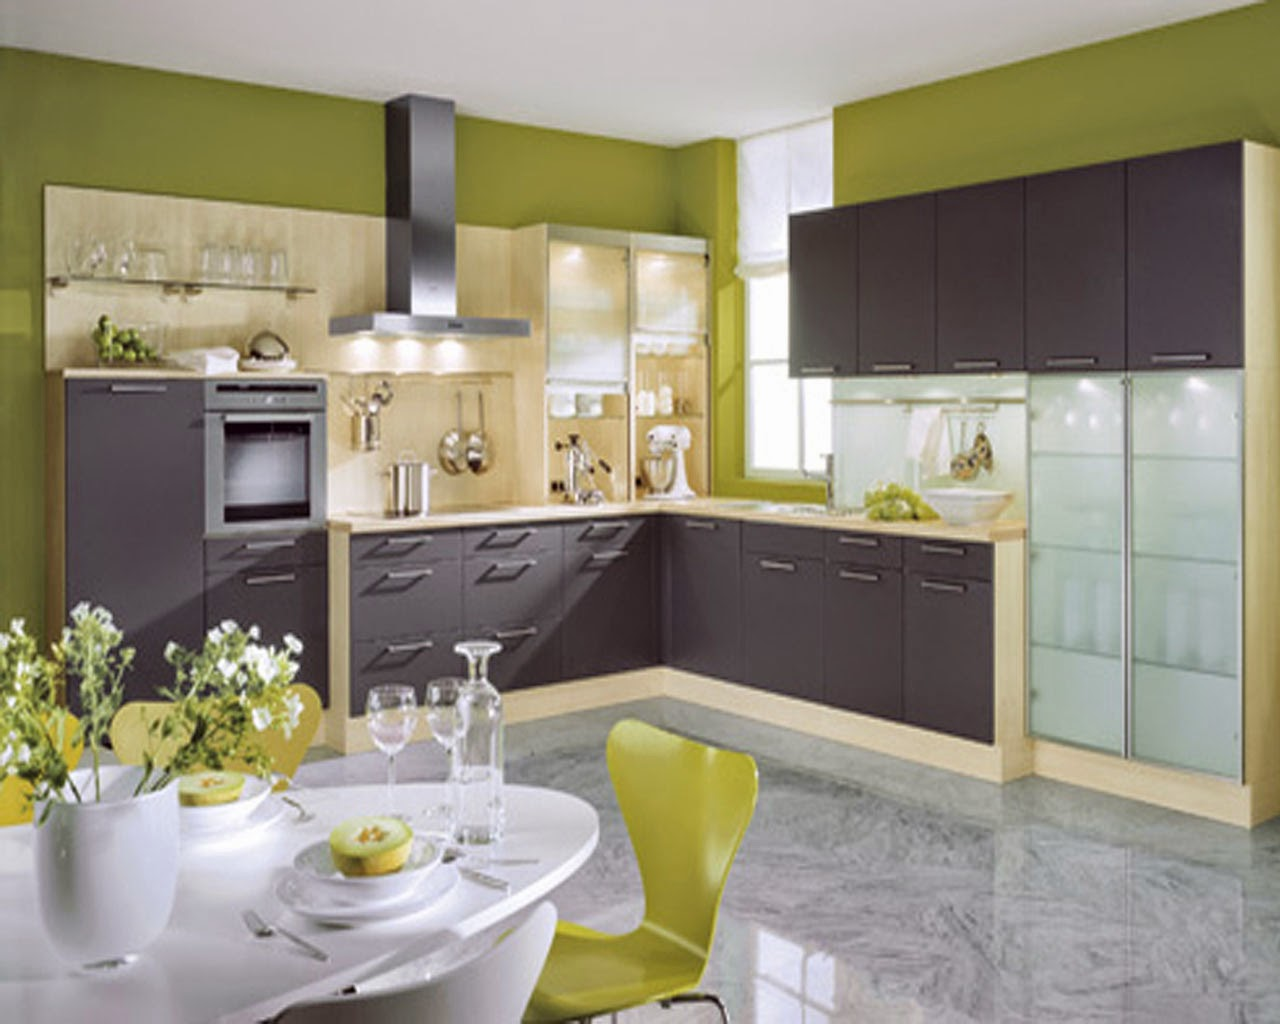 Kitchen designing ideas 2014 freshnist design for Best kitchen